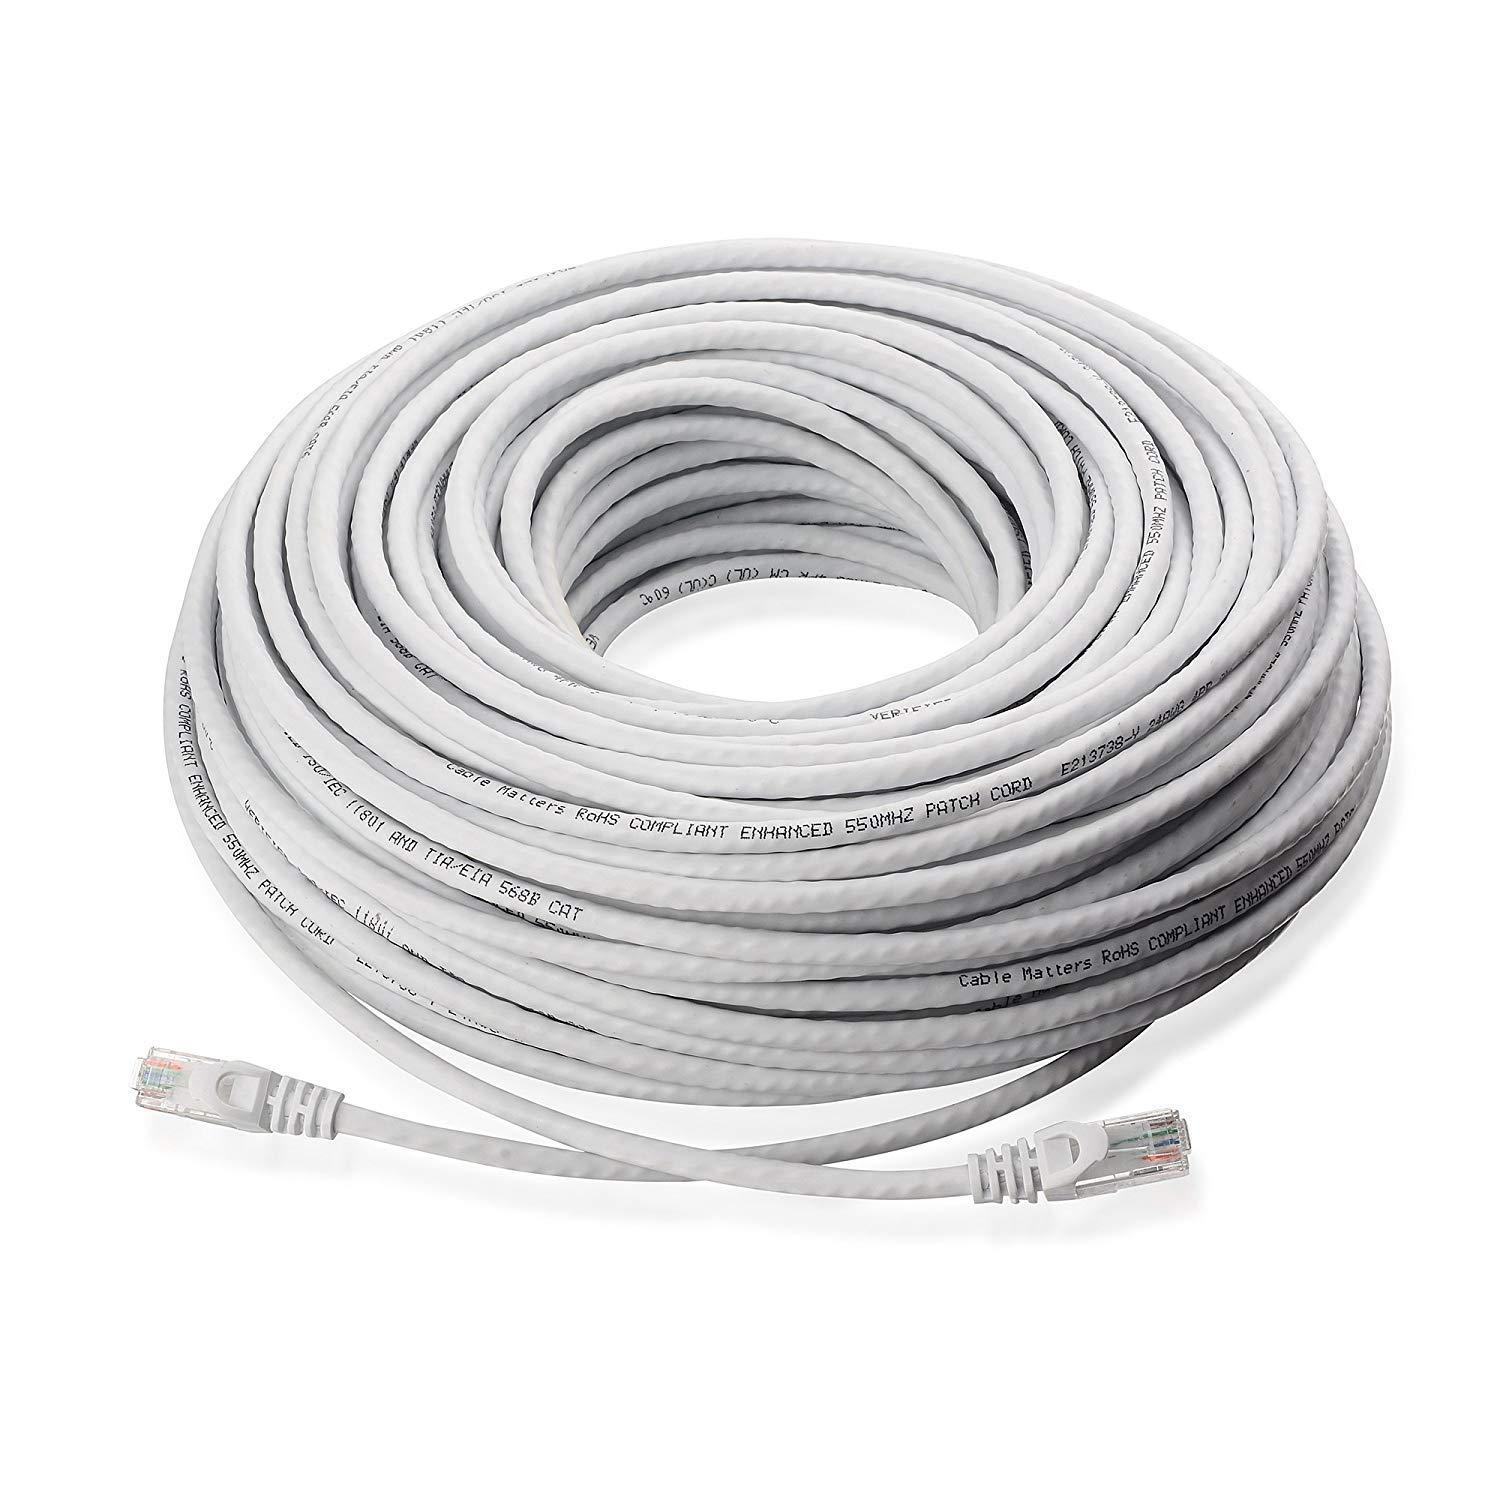 75 ft Cat5 Cable CAT5E RJ45 LAN Network Ethernet Router Switch White Patch cord